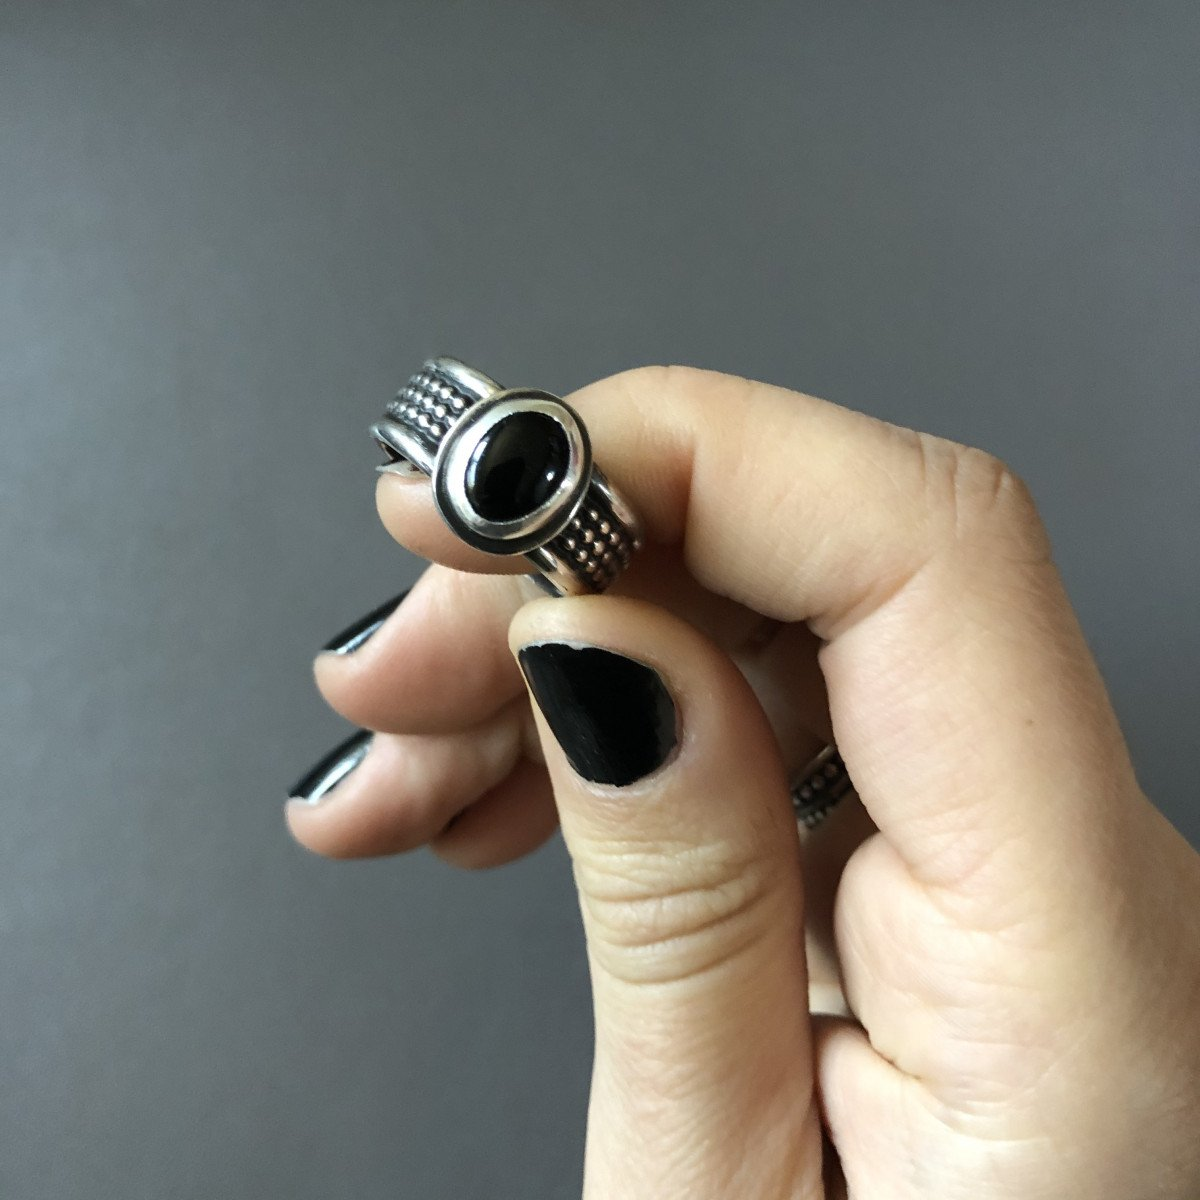 The Anatomy of a Ring - Jewelry Terminology